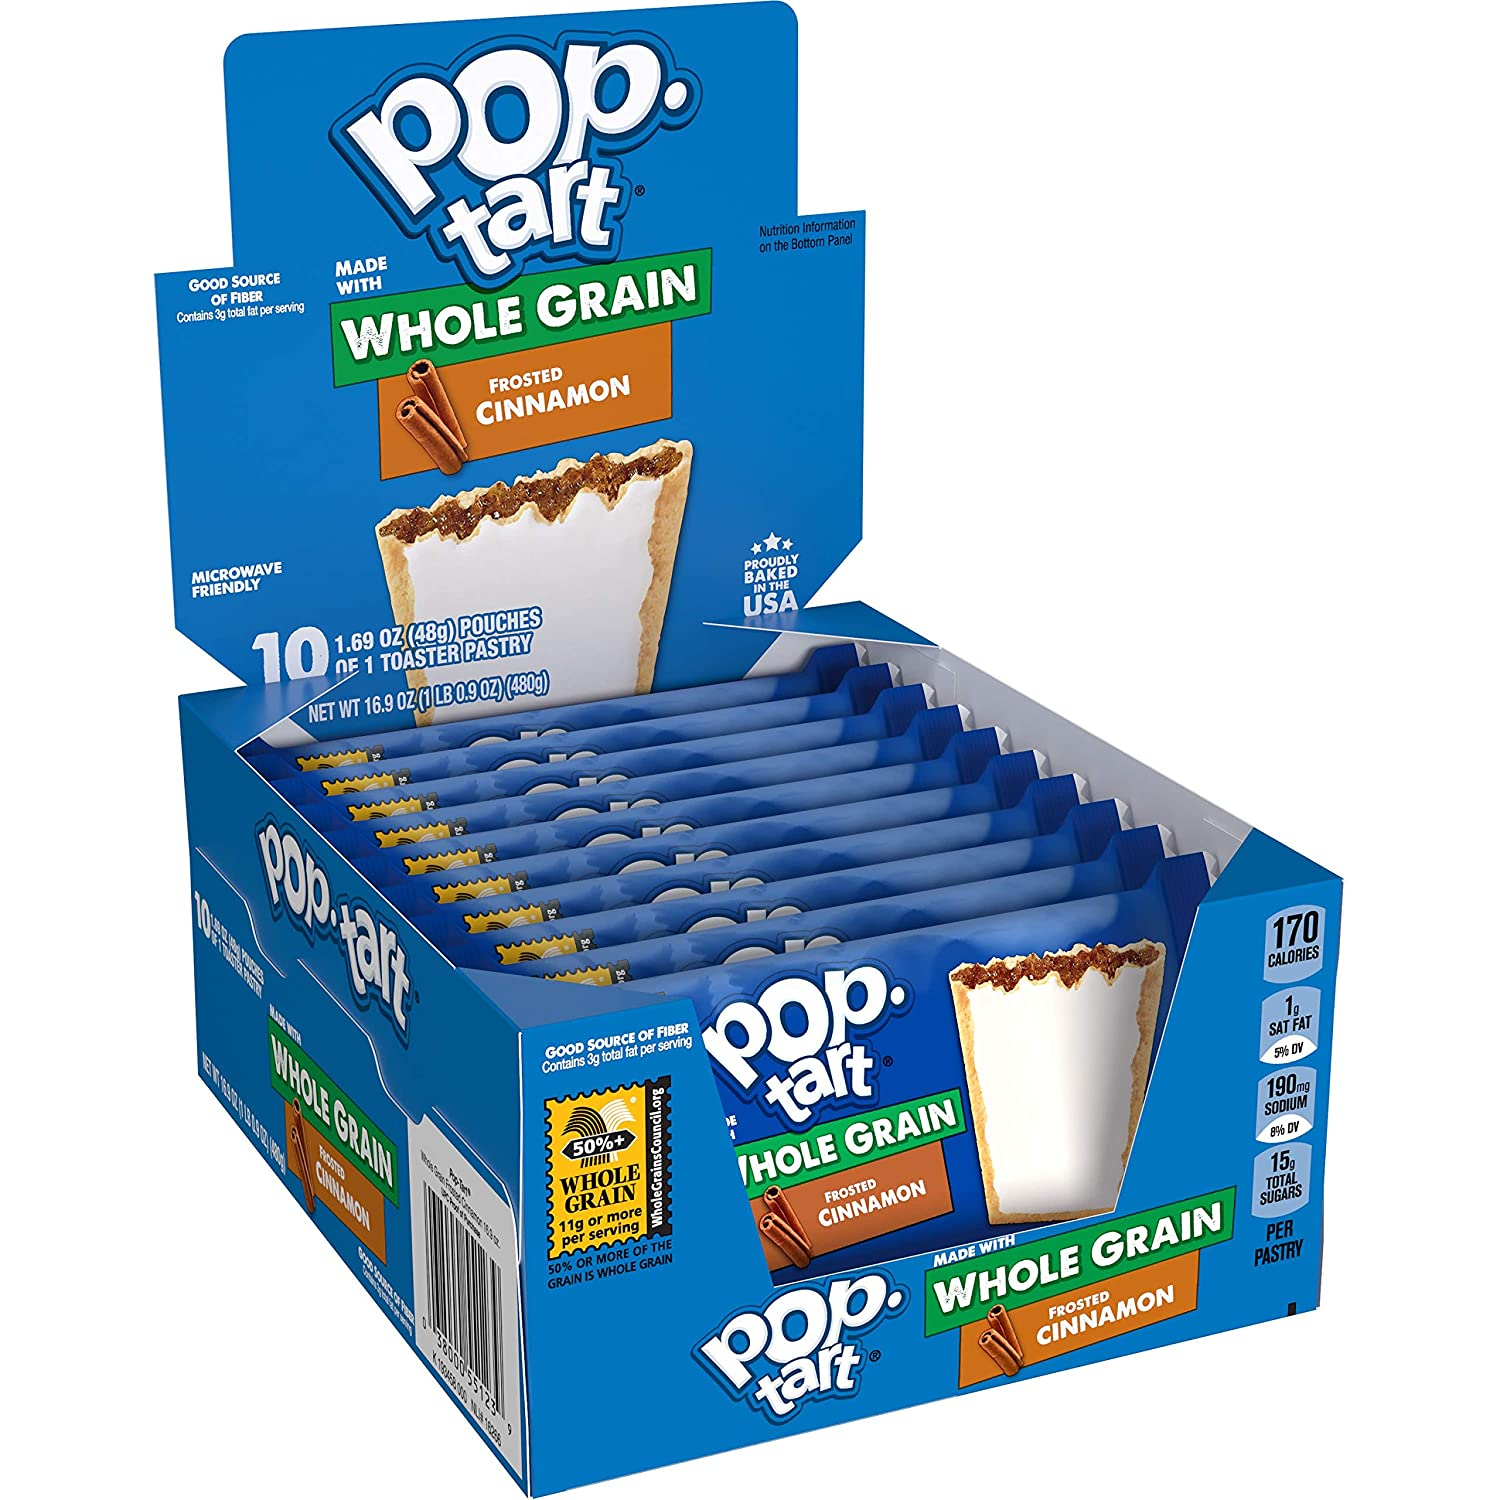 Pop-Tarts, Toaster Pastries Made with Whole Grain, Frosted Cinnamon 17.6oz (120 Count)